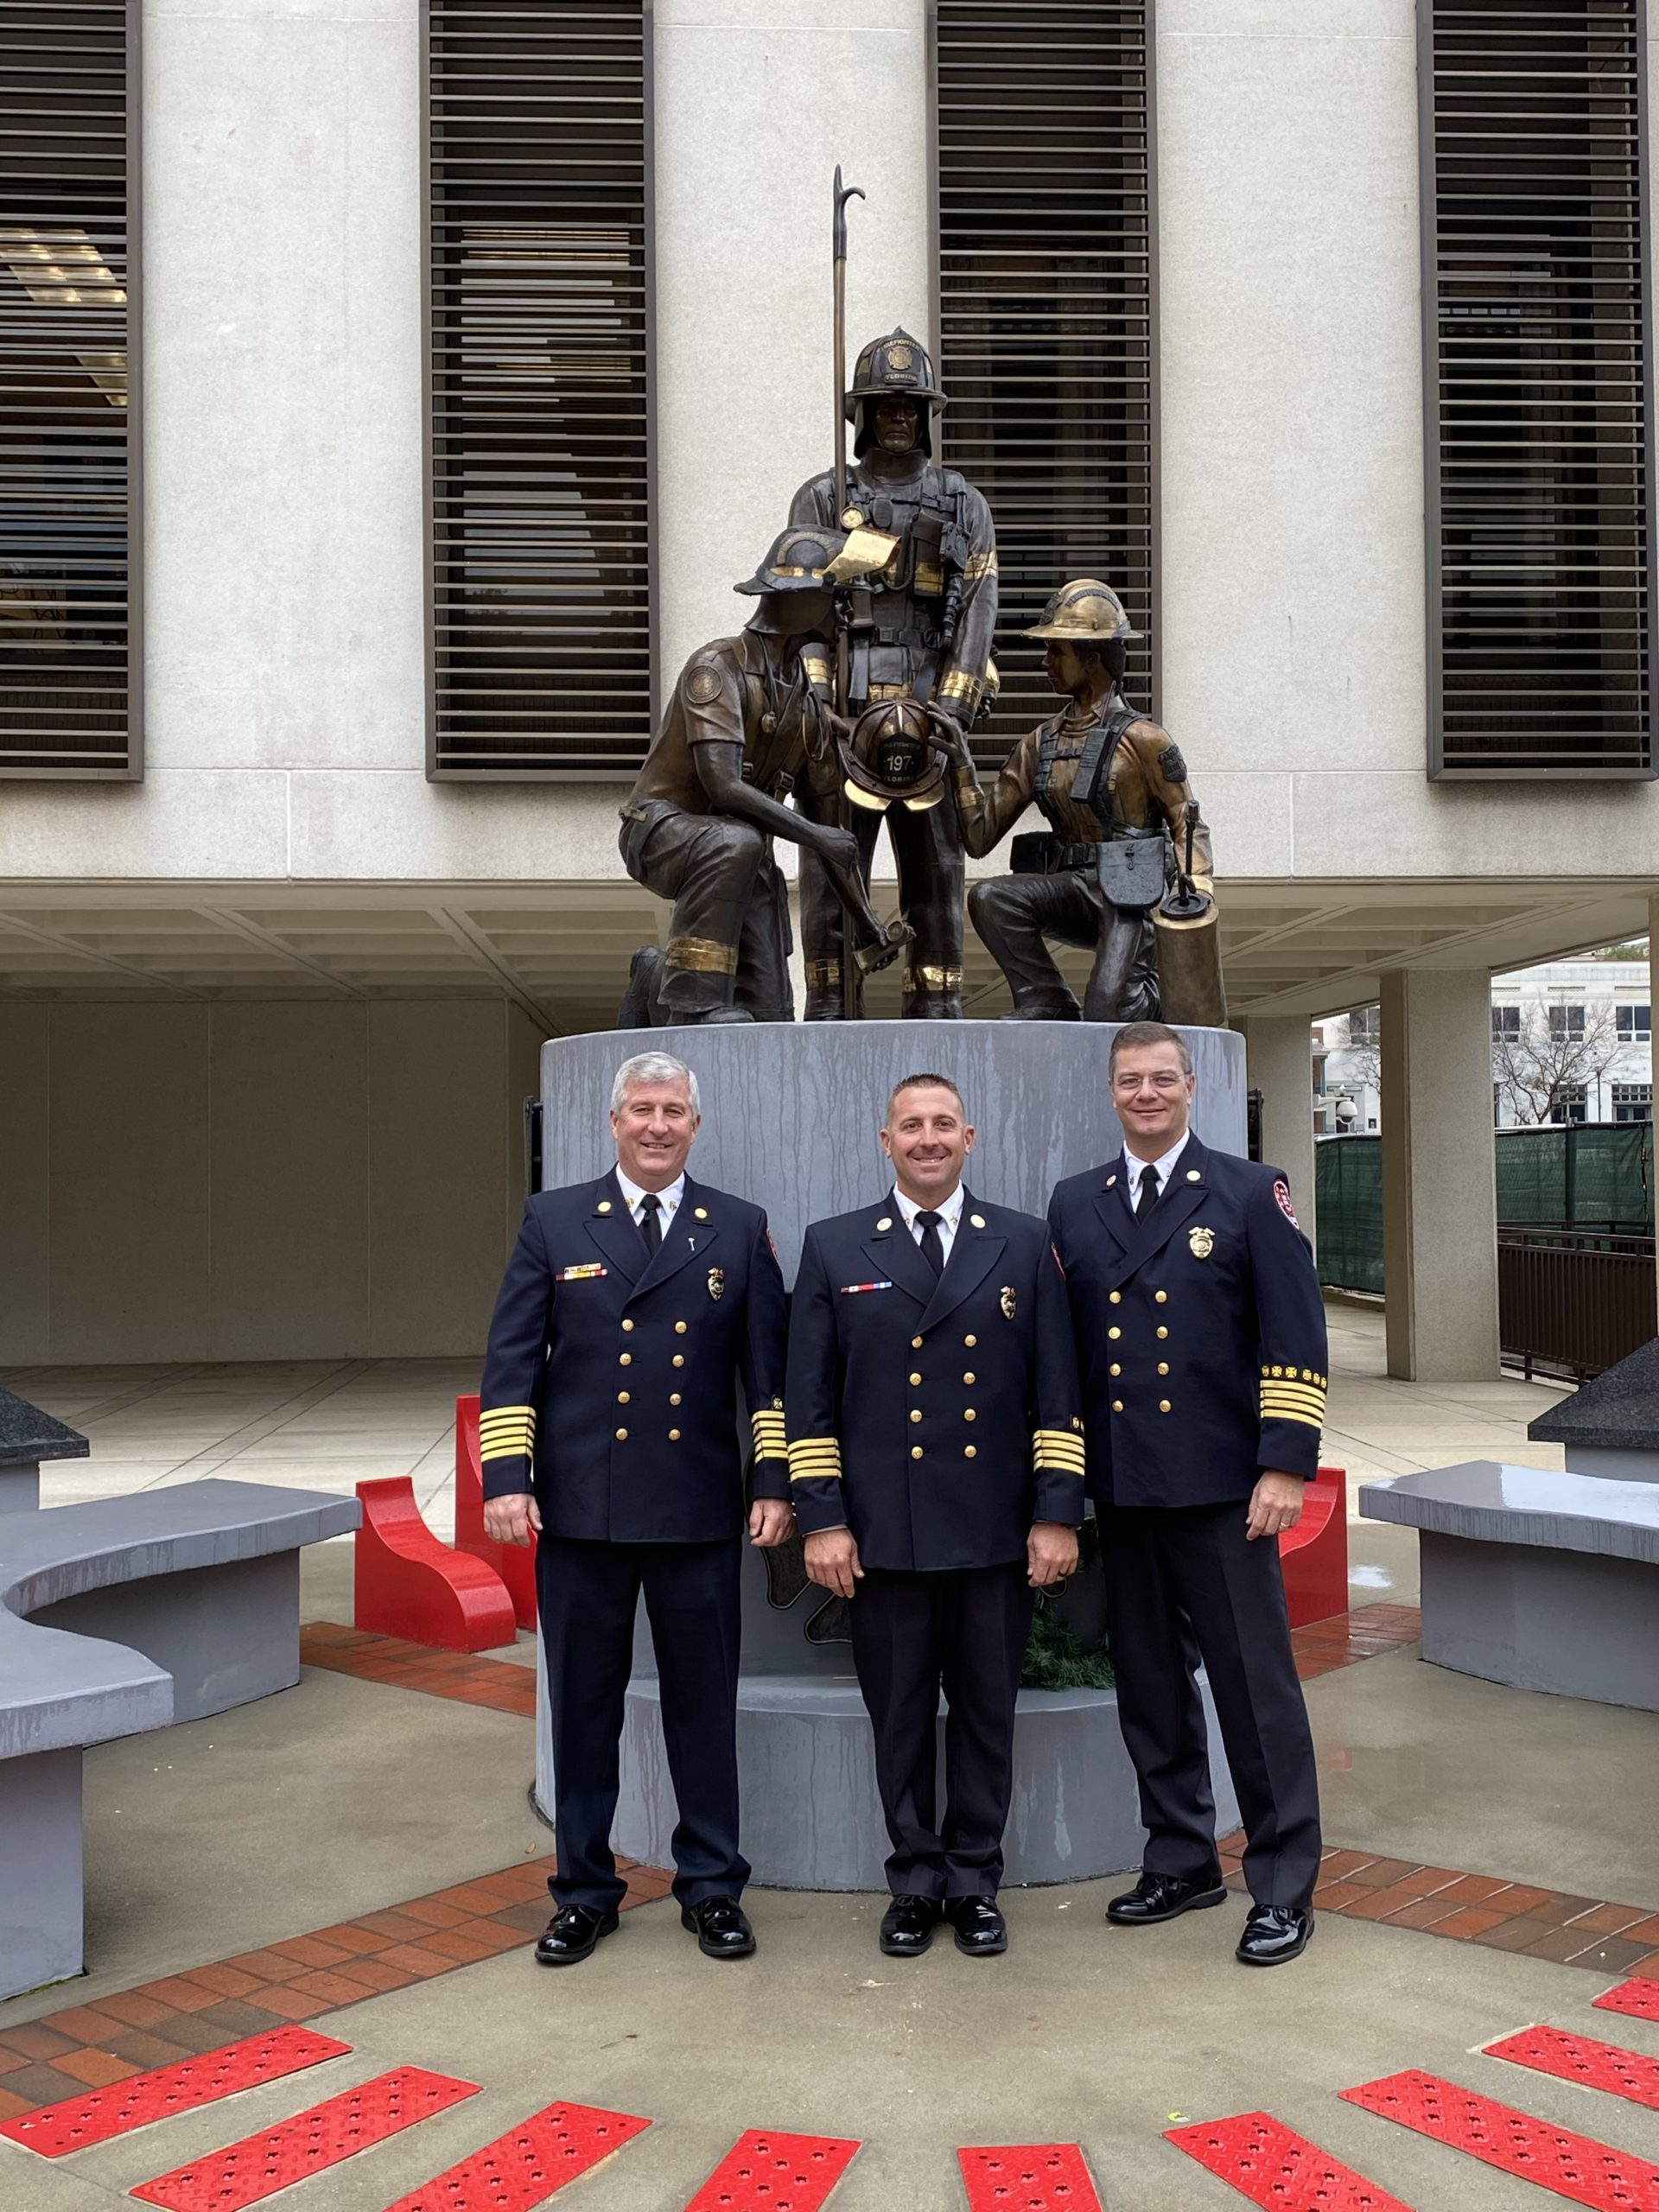 Chief Hoyle, Deputy Chief Falcone, and Deputy Chief Bradshaw photographed in front of the firefighter memorial statue at the capital in Tallahassee, FL.